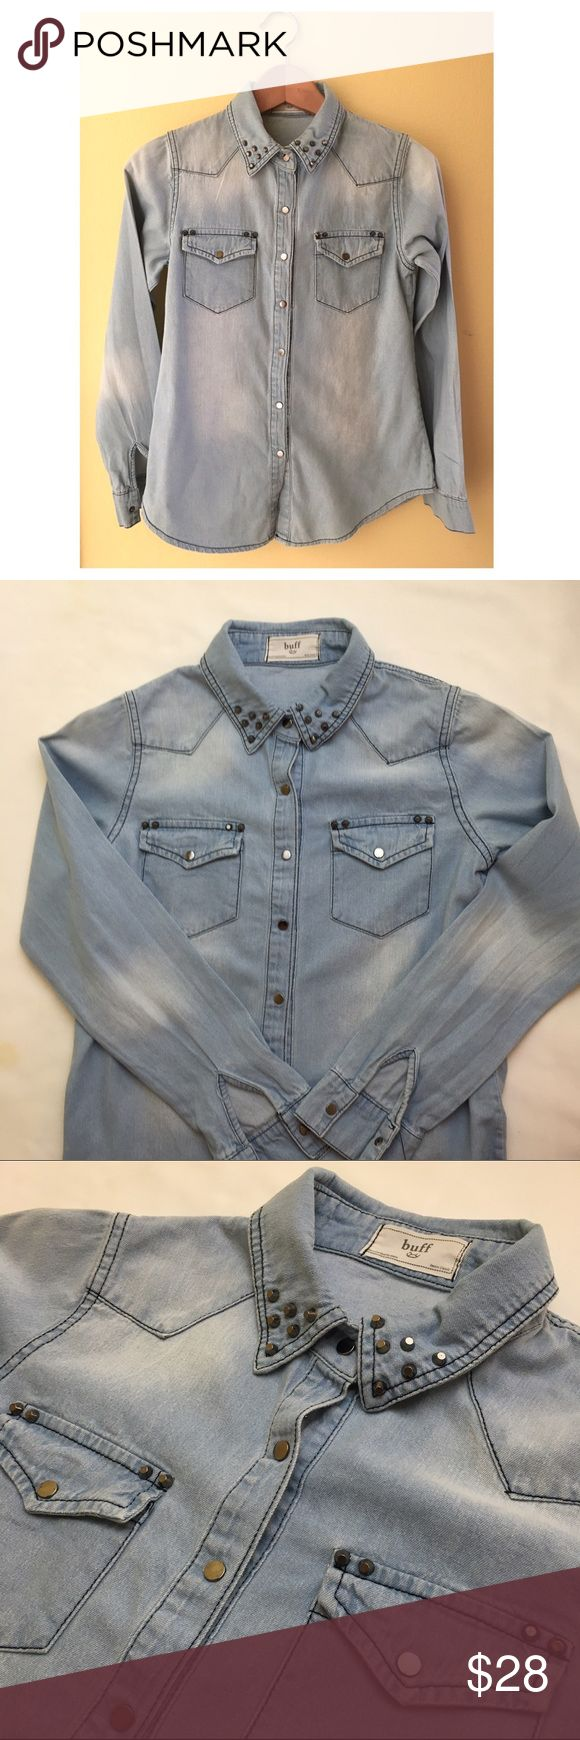 Light Denim Button-Down Shirt Has metal buttons and studs on the collar. Tops Button Down Shirts